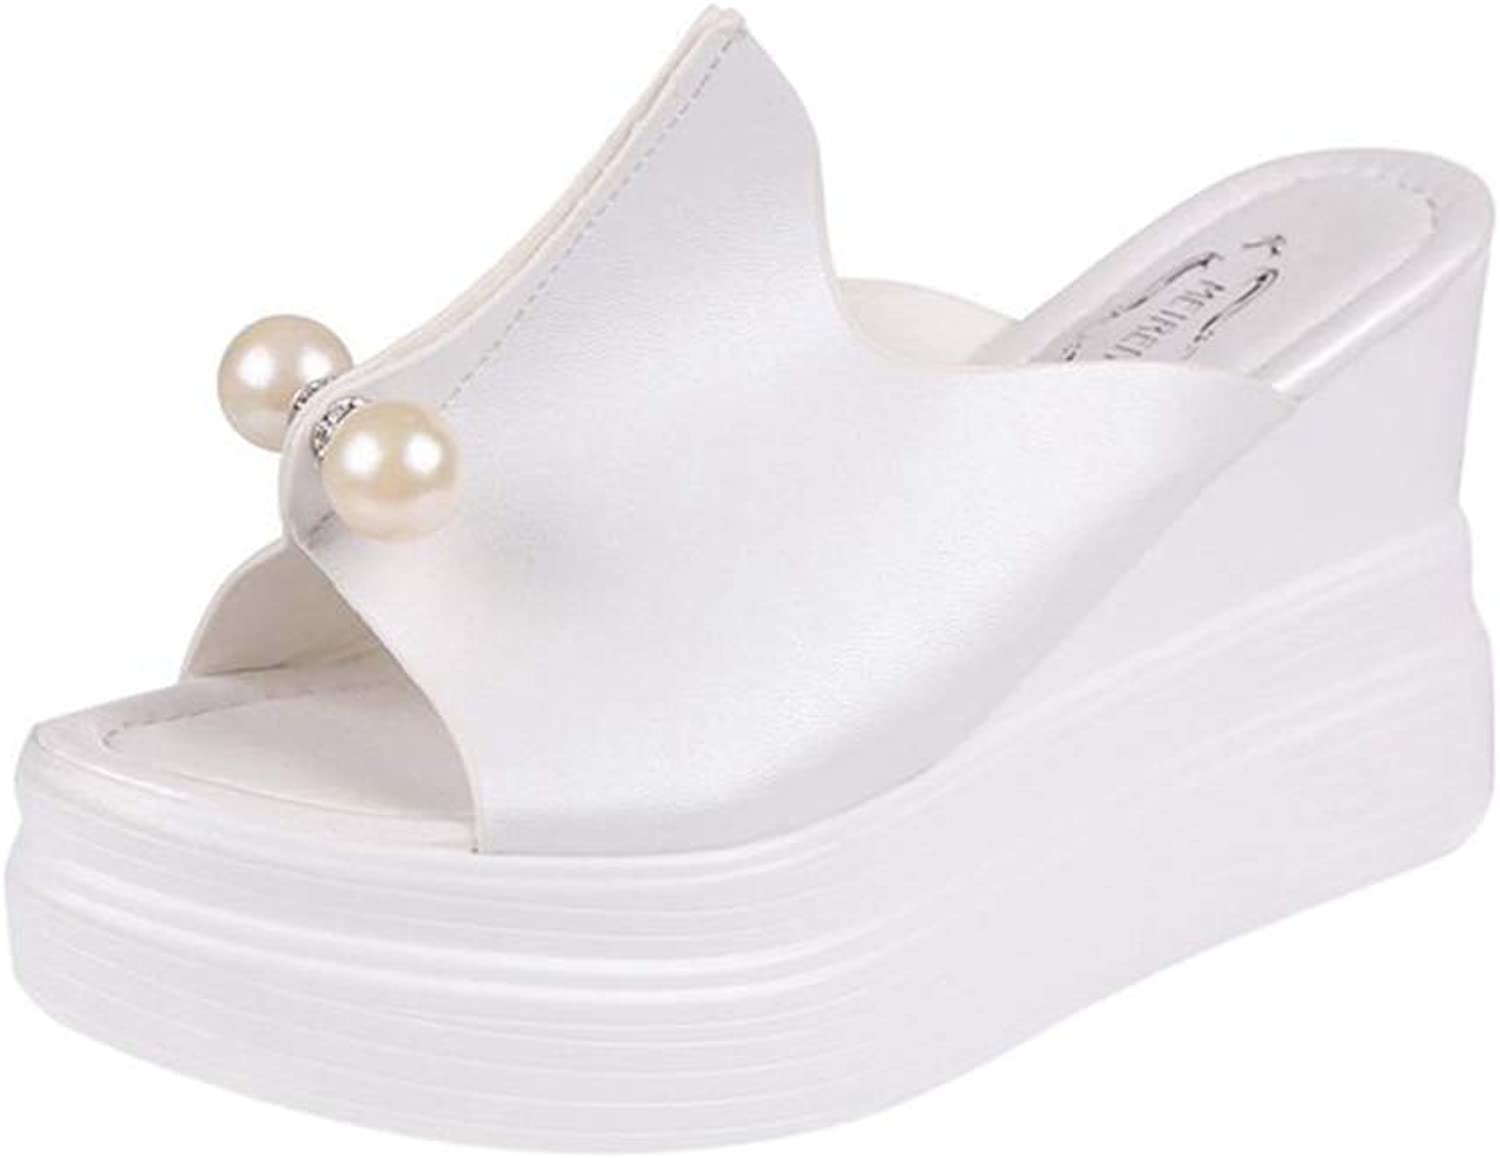 T-JULY Women Summer Sandals Thick Heel Platform Wedges Sandals Sexy Beading Slippers Sandalias Slides White Black High